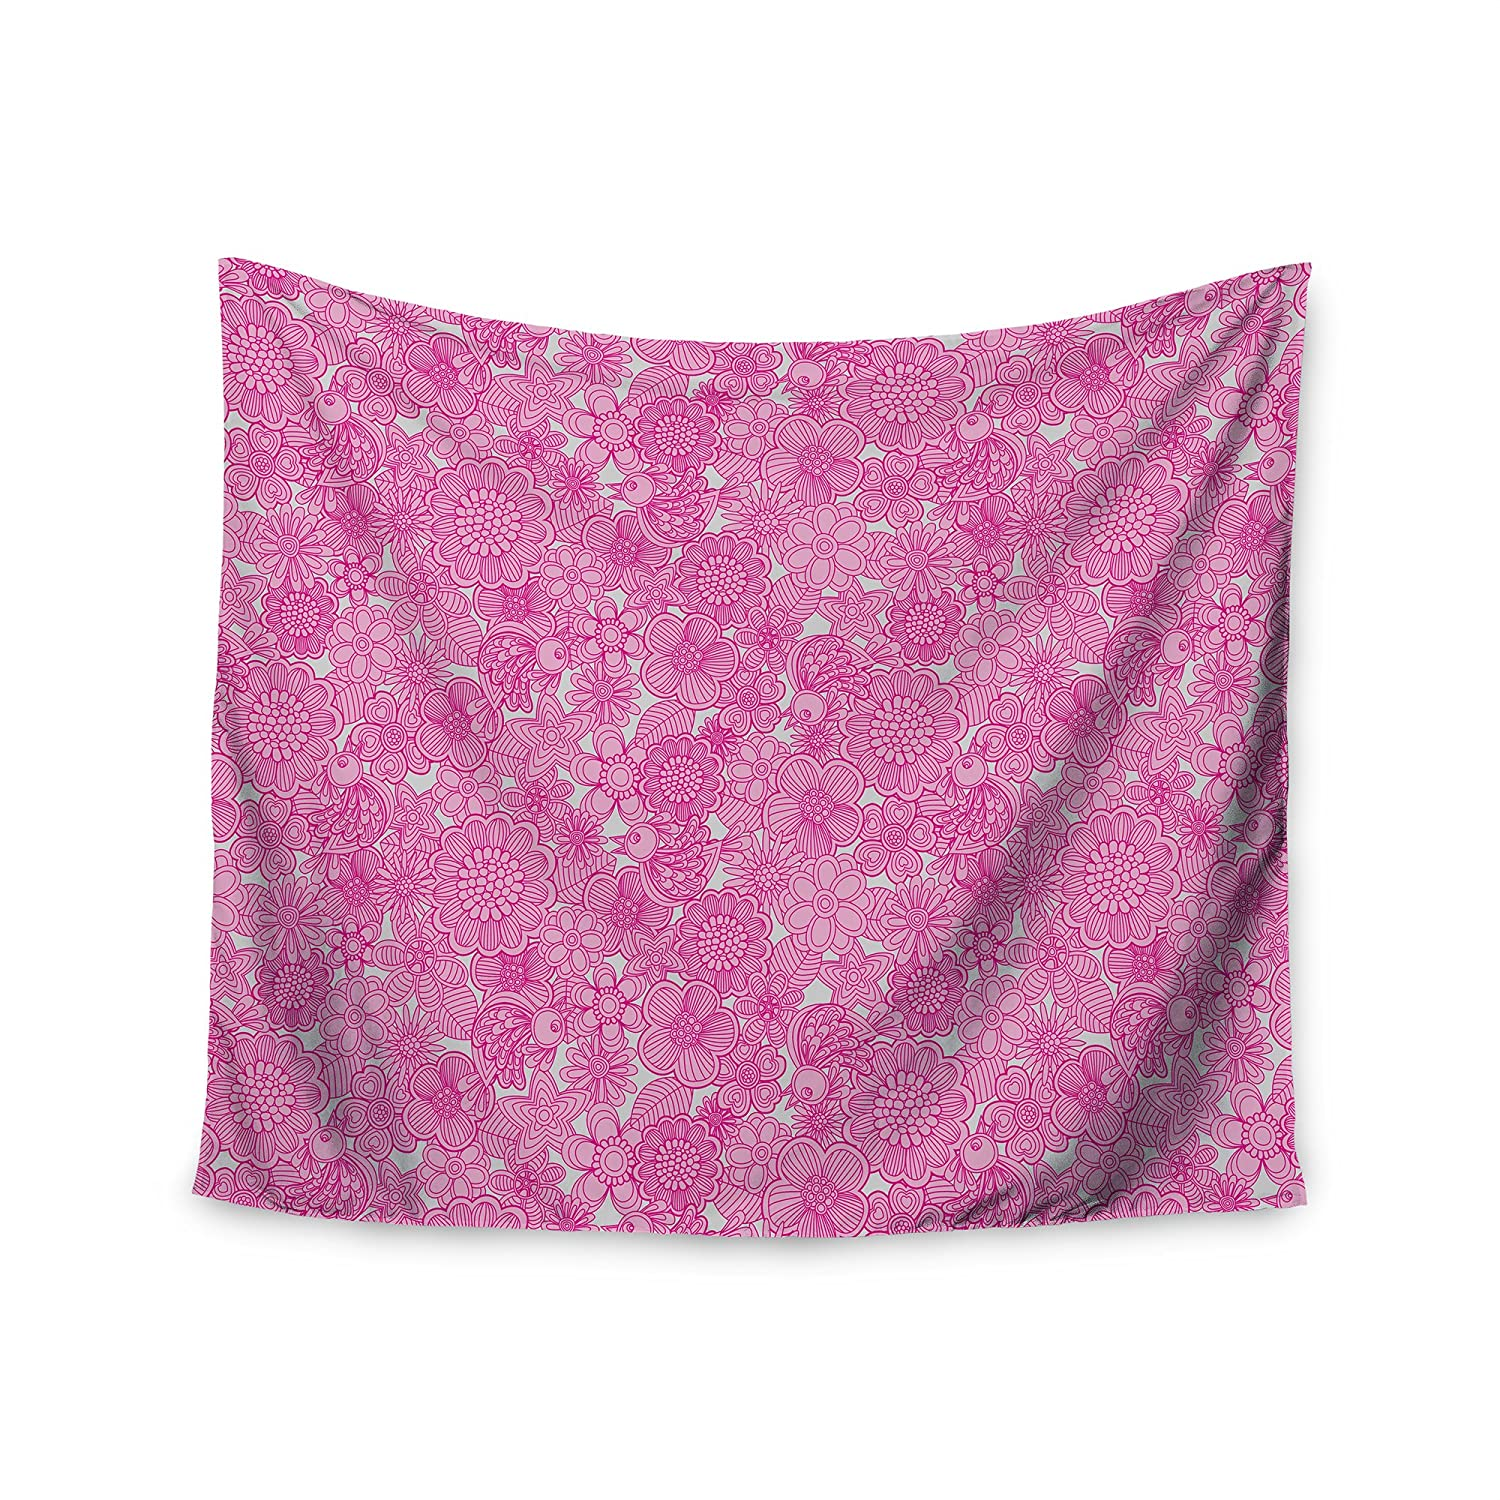 68 x 80 KESS InHouse Julia Grifol Welcome Birds To My Pink Garden Wall Tapestry